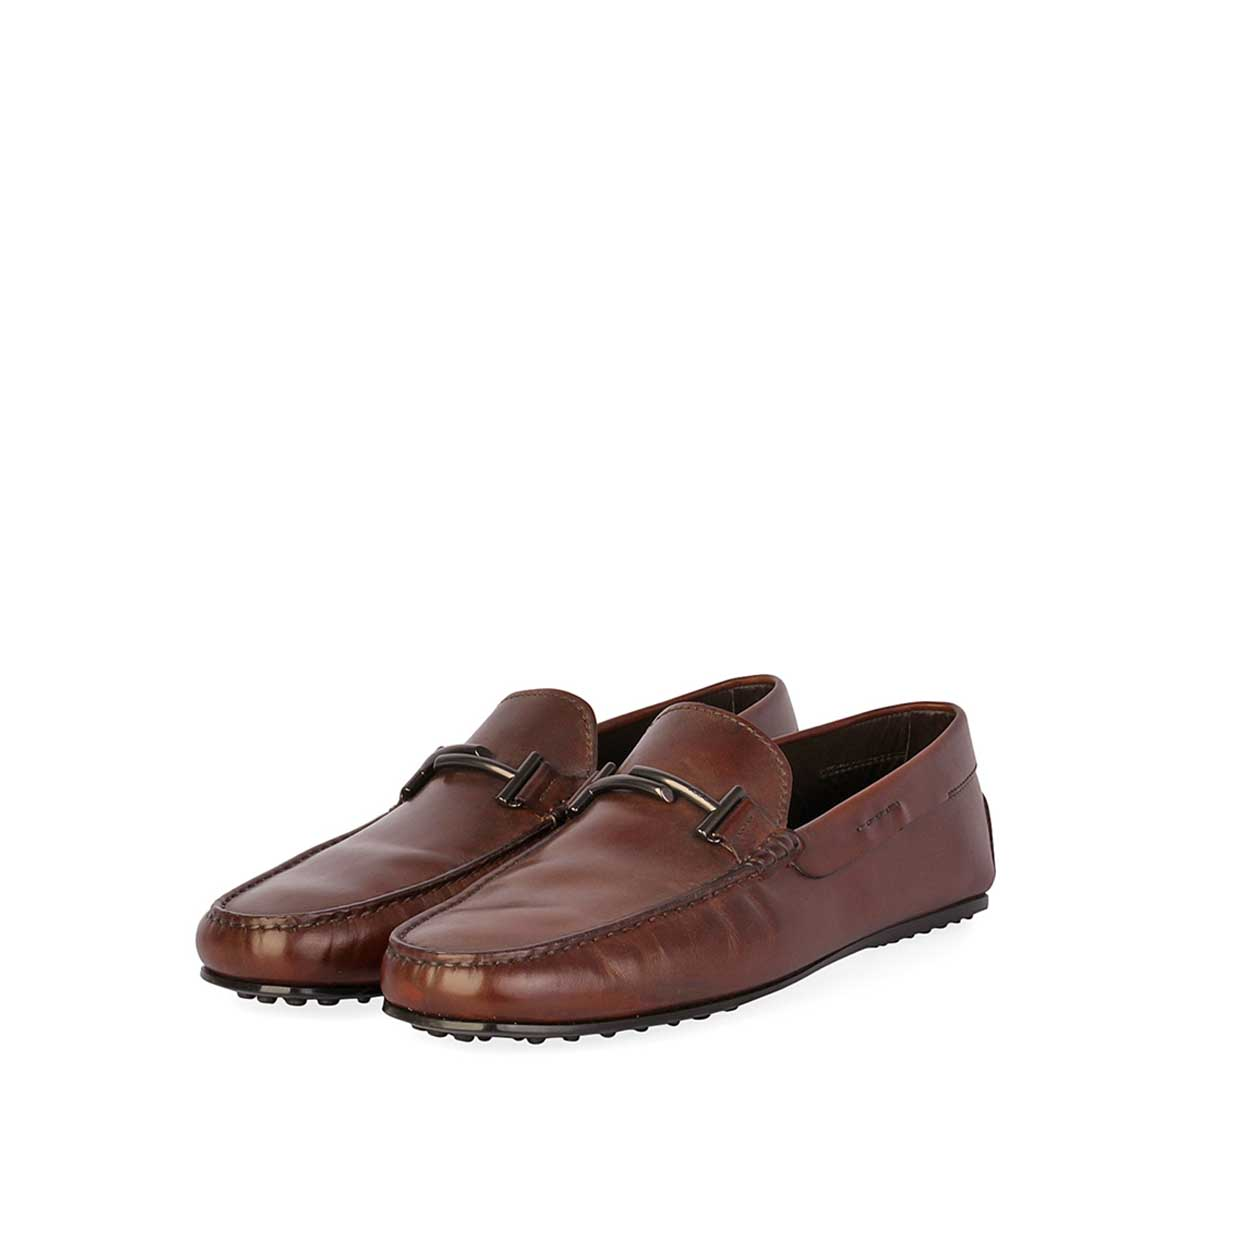 tods men s gommino double t loafers brown s 45 10 5. Black Bedroom Furniture Sets. Home Design Ideas